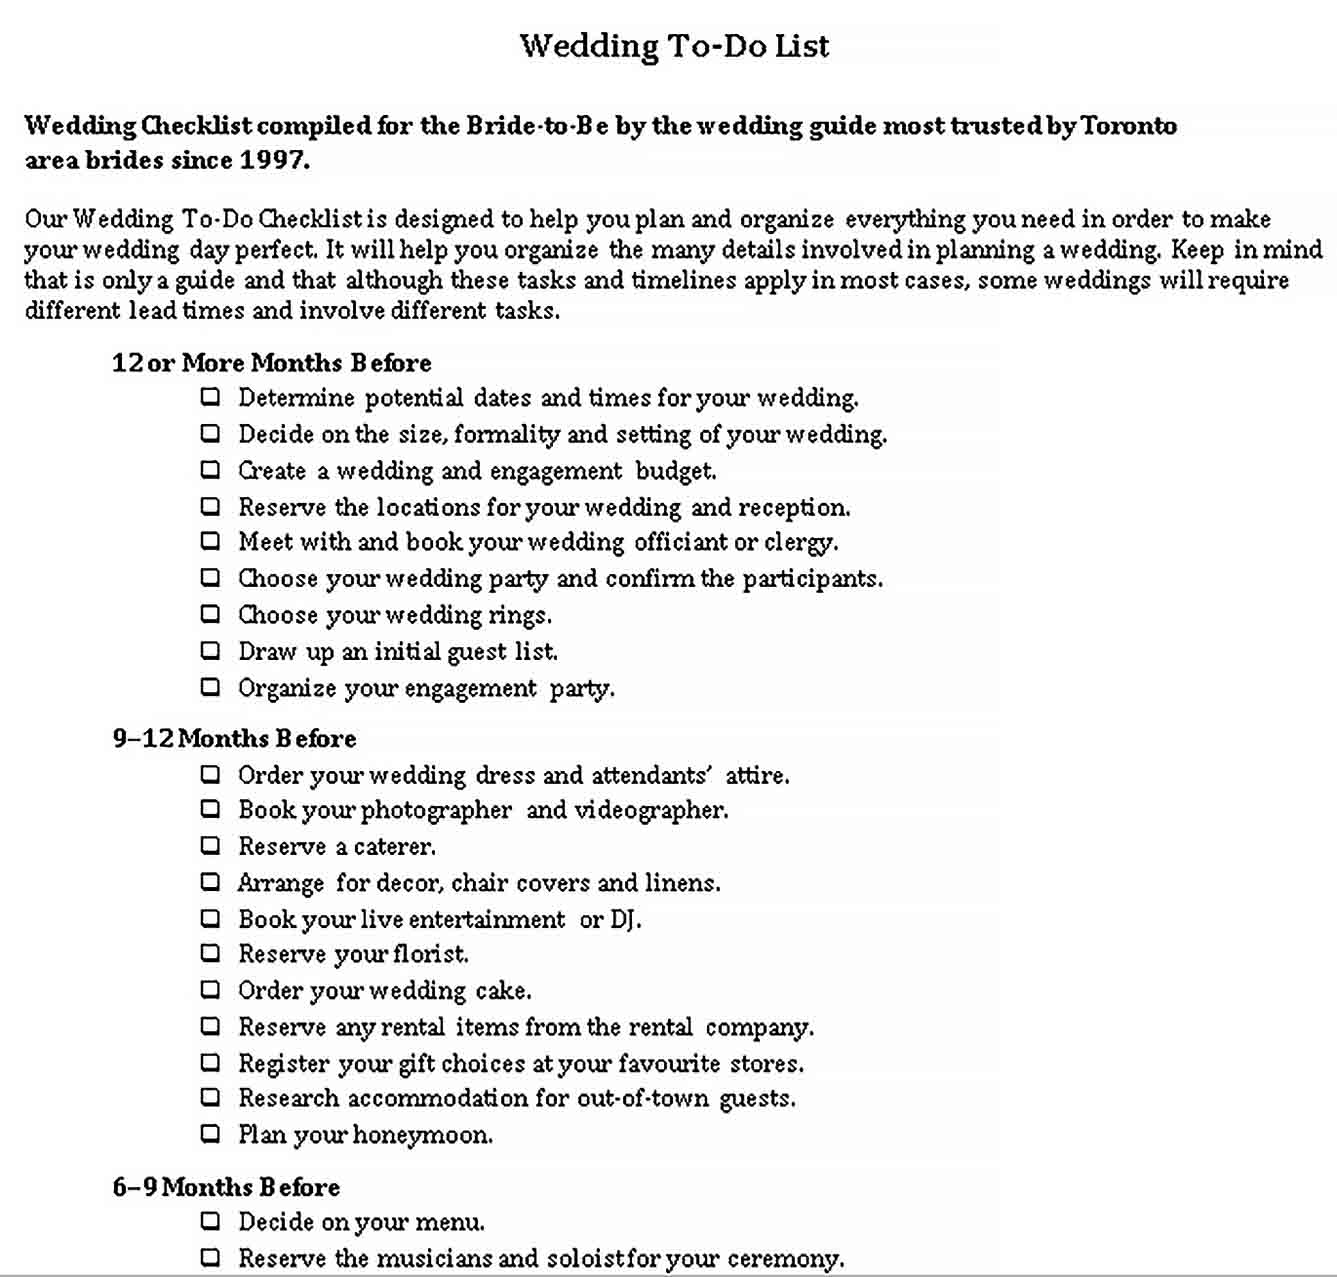 Template Wedding To Do List 1